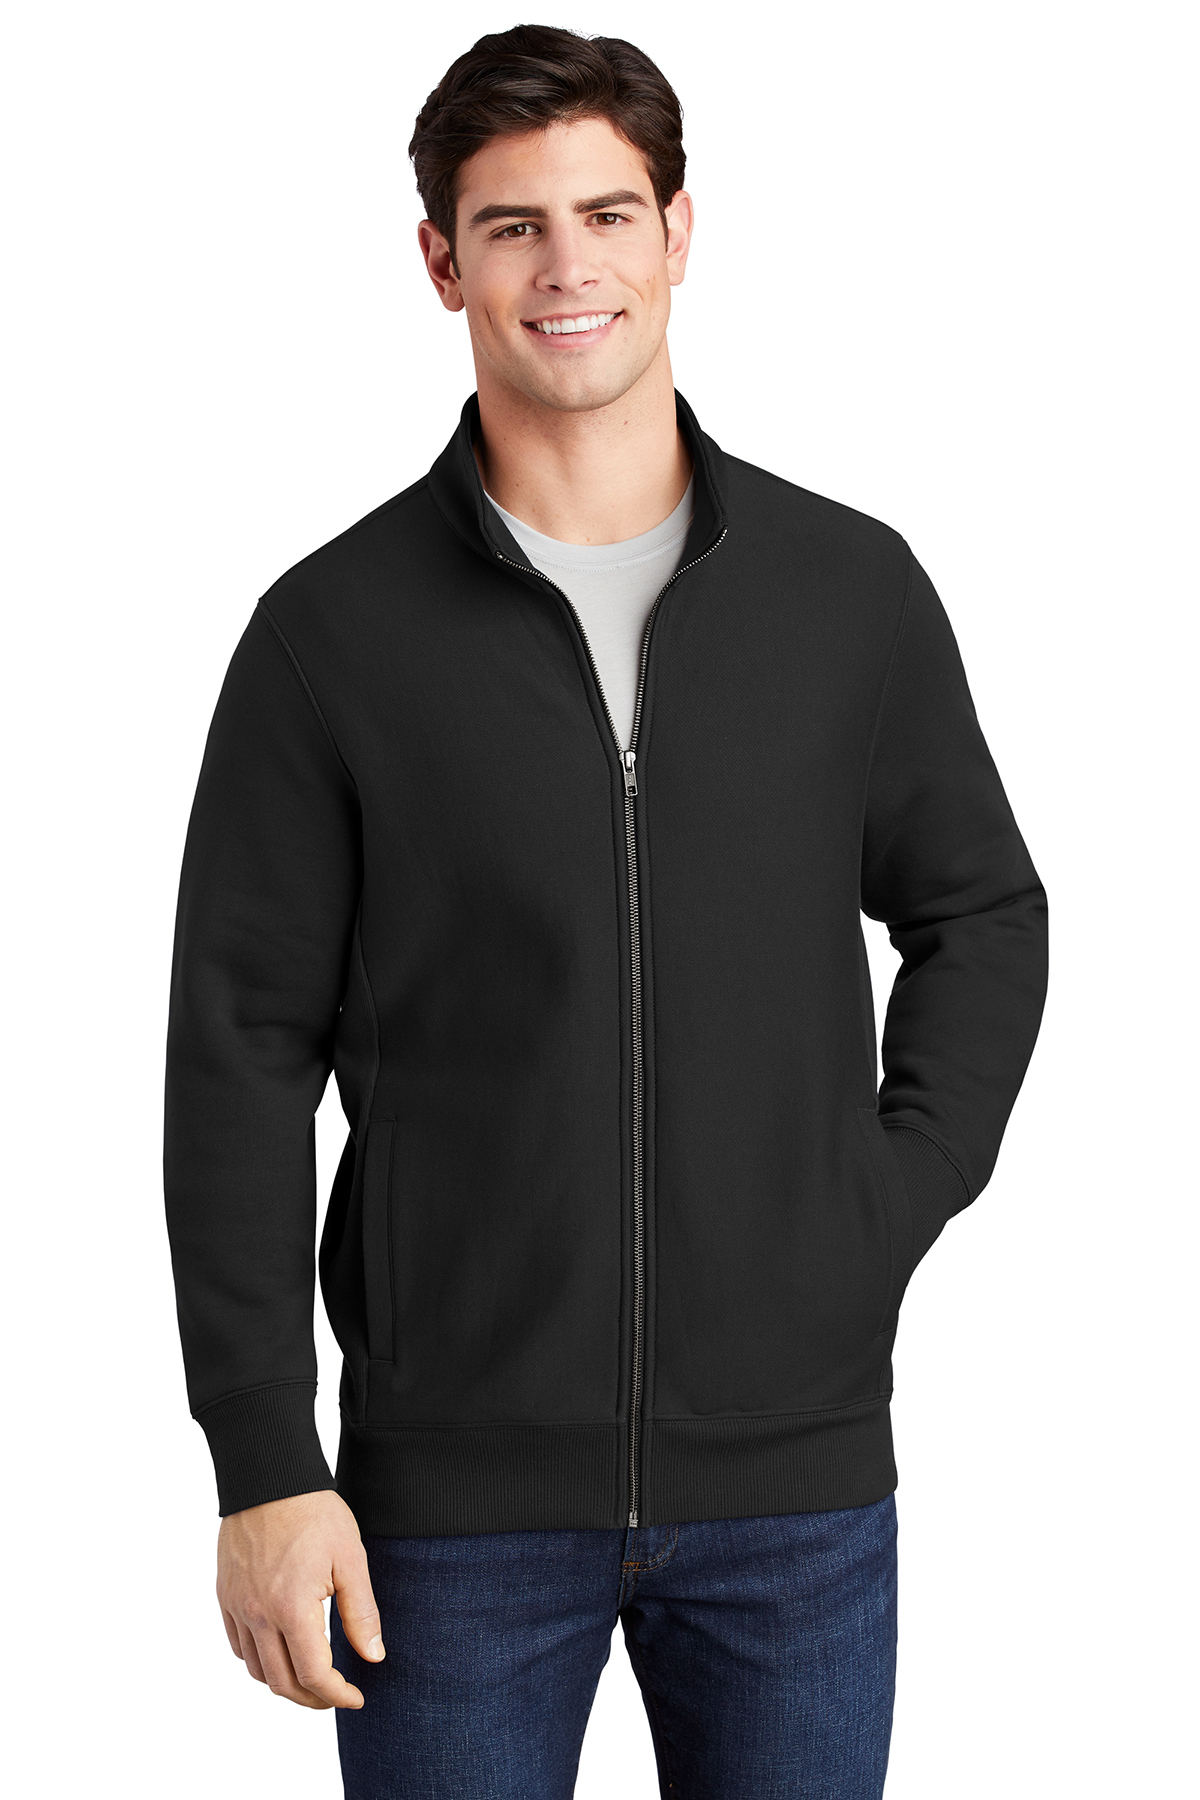 Sport-Tek ST284 - Super Heavyweight Full-Zip Sweatshirt